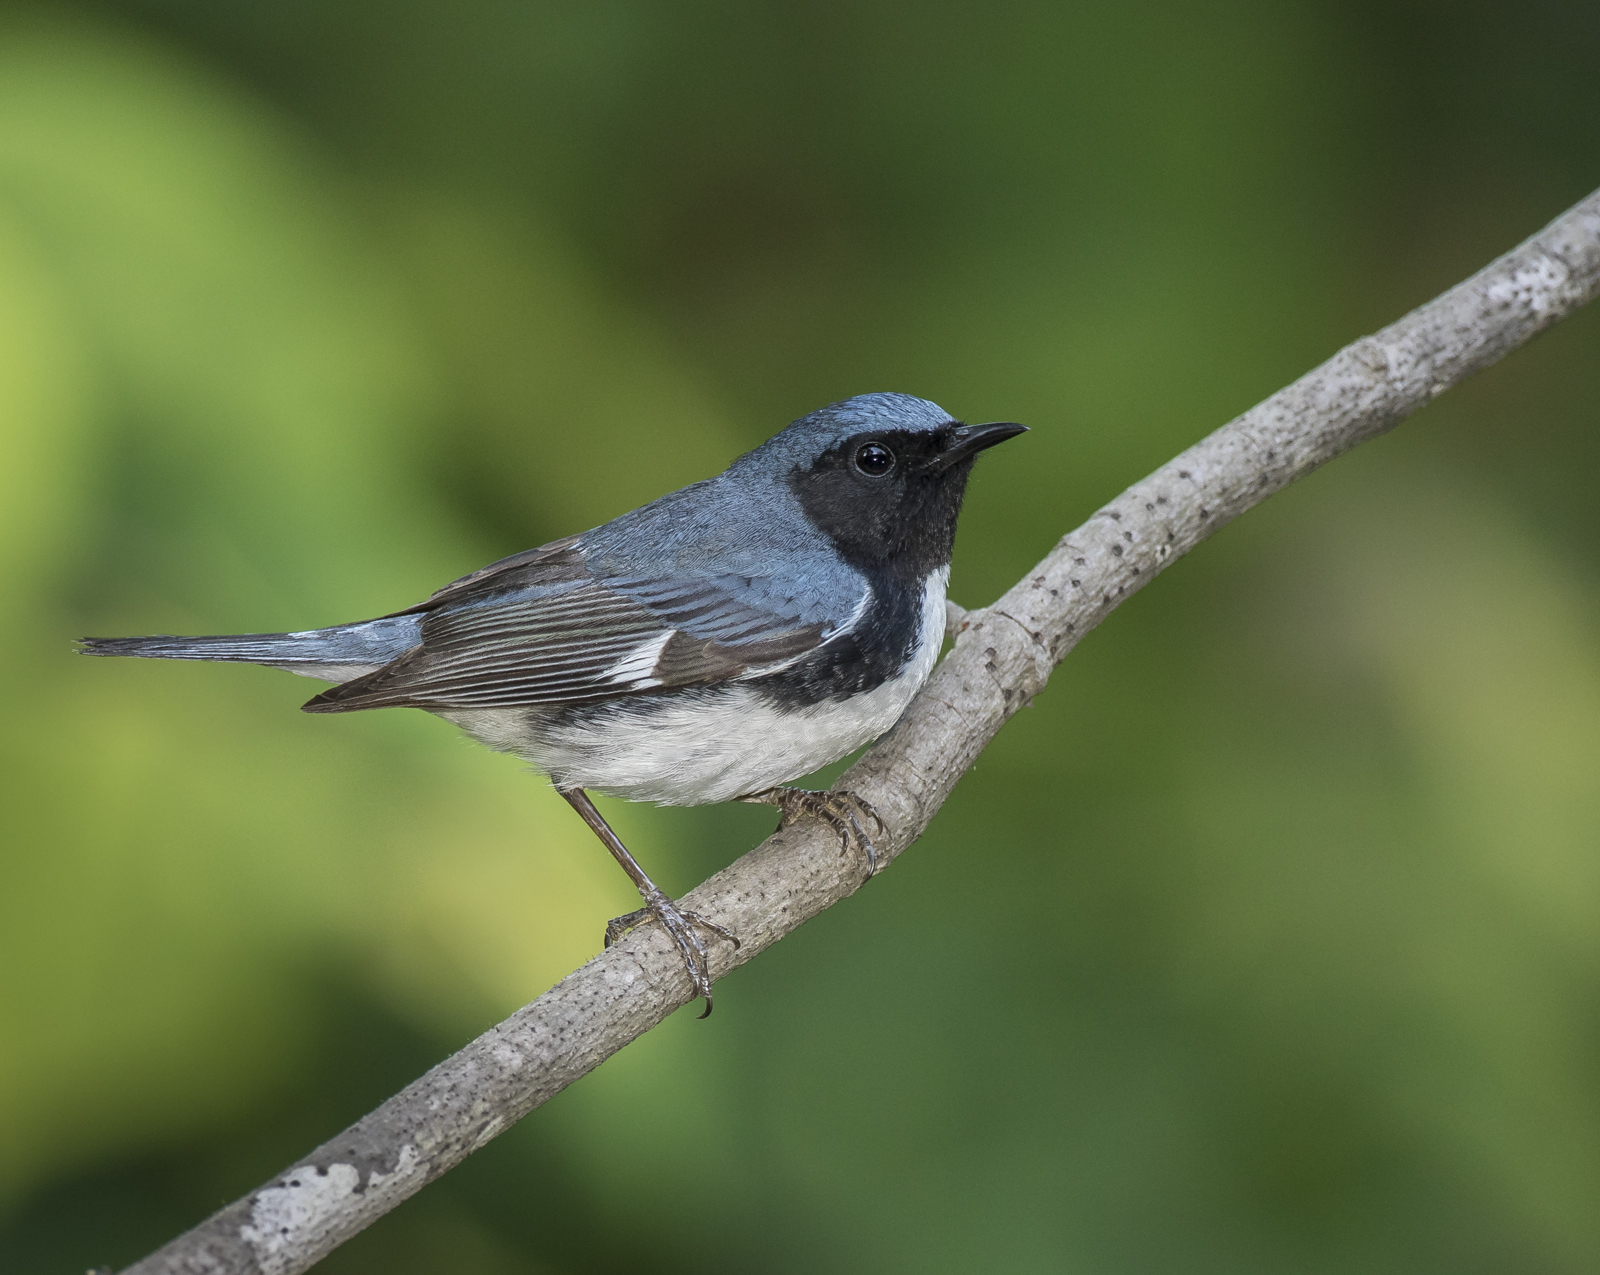 Black-throated blue on branch best